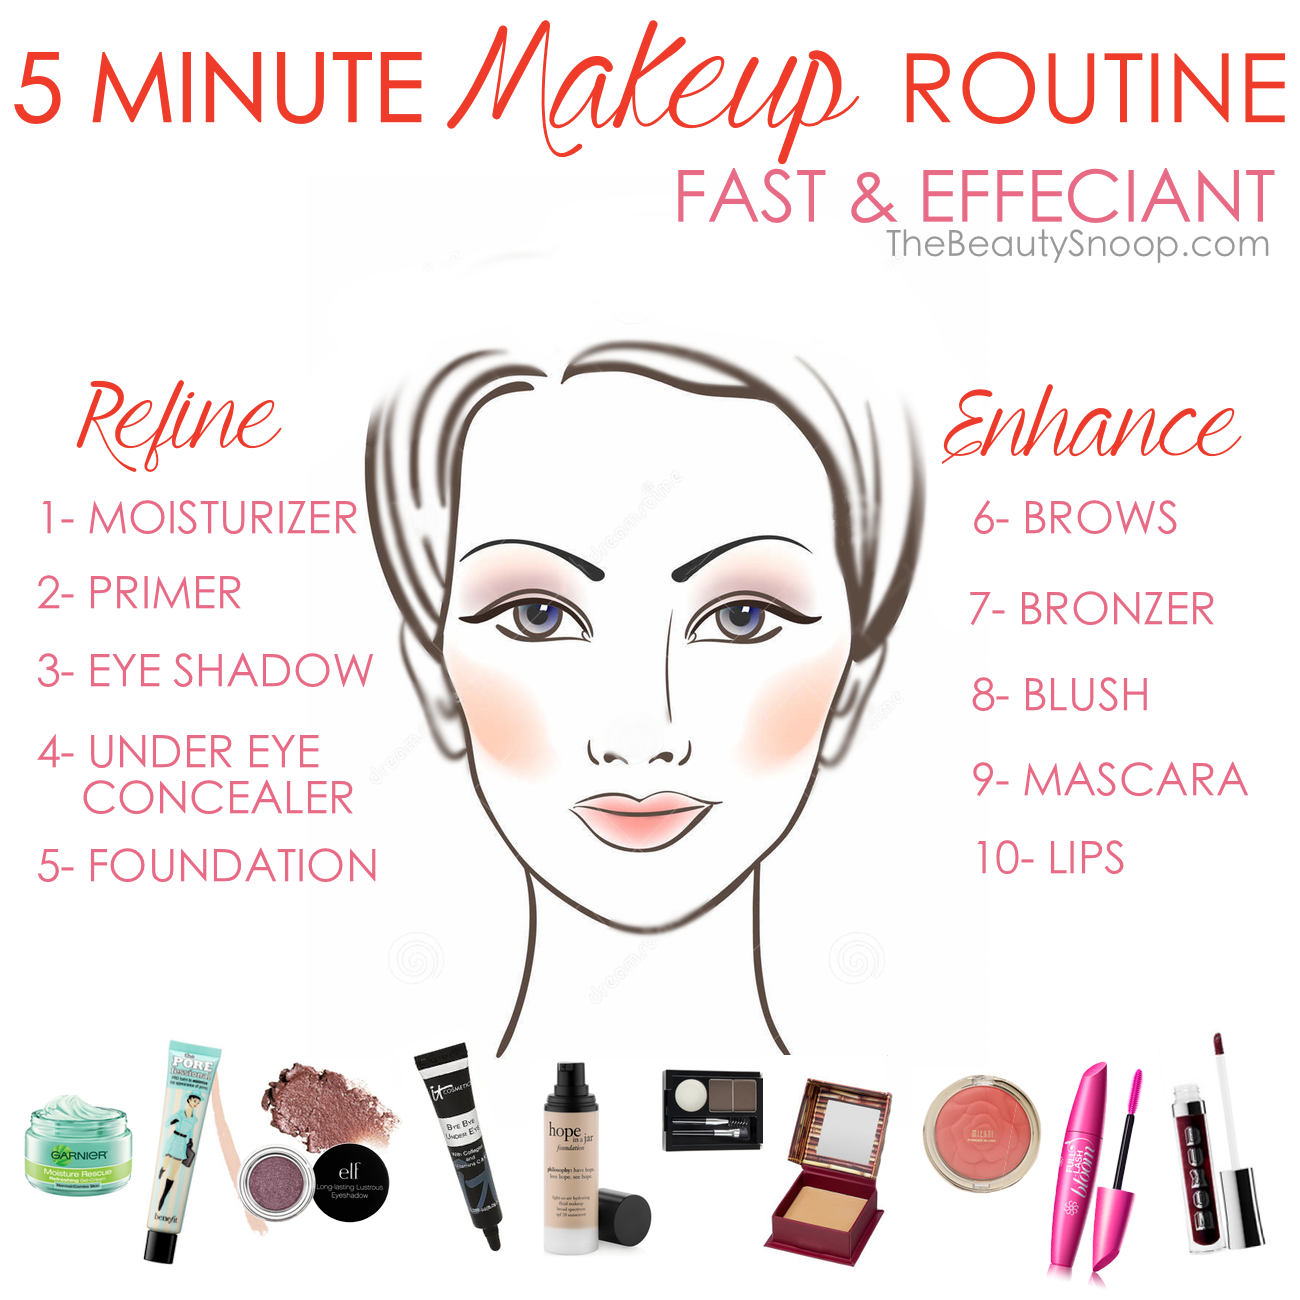 9 MINUTE MAKEUP // SIMPLIFY YOUR ROUTINE  Makeup routine, 9